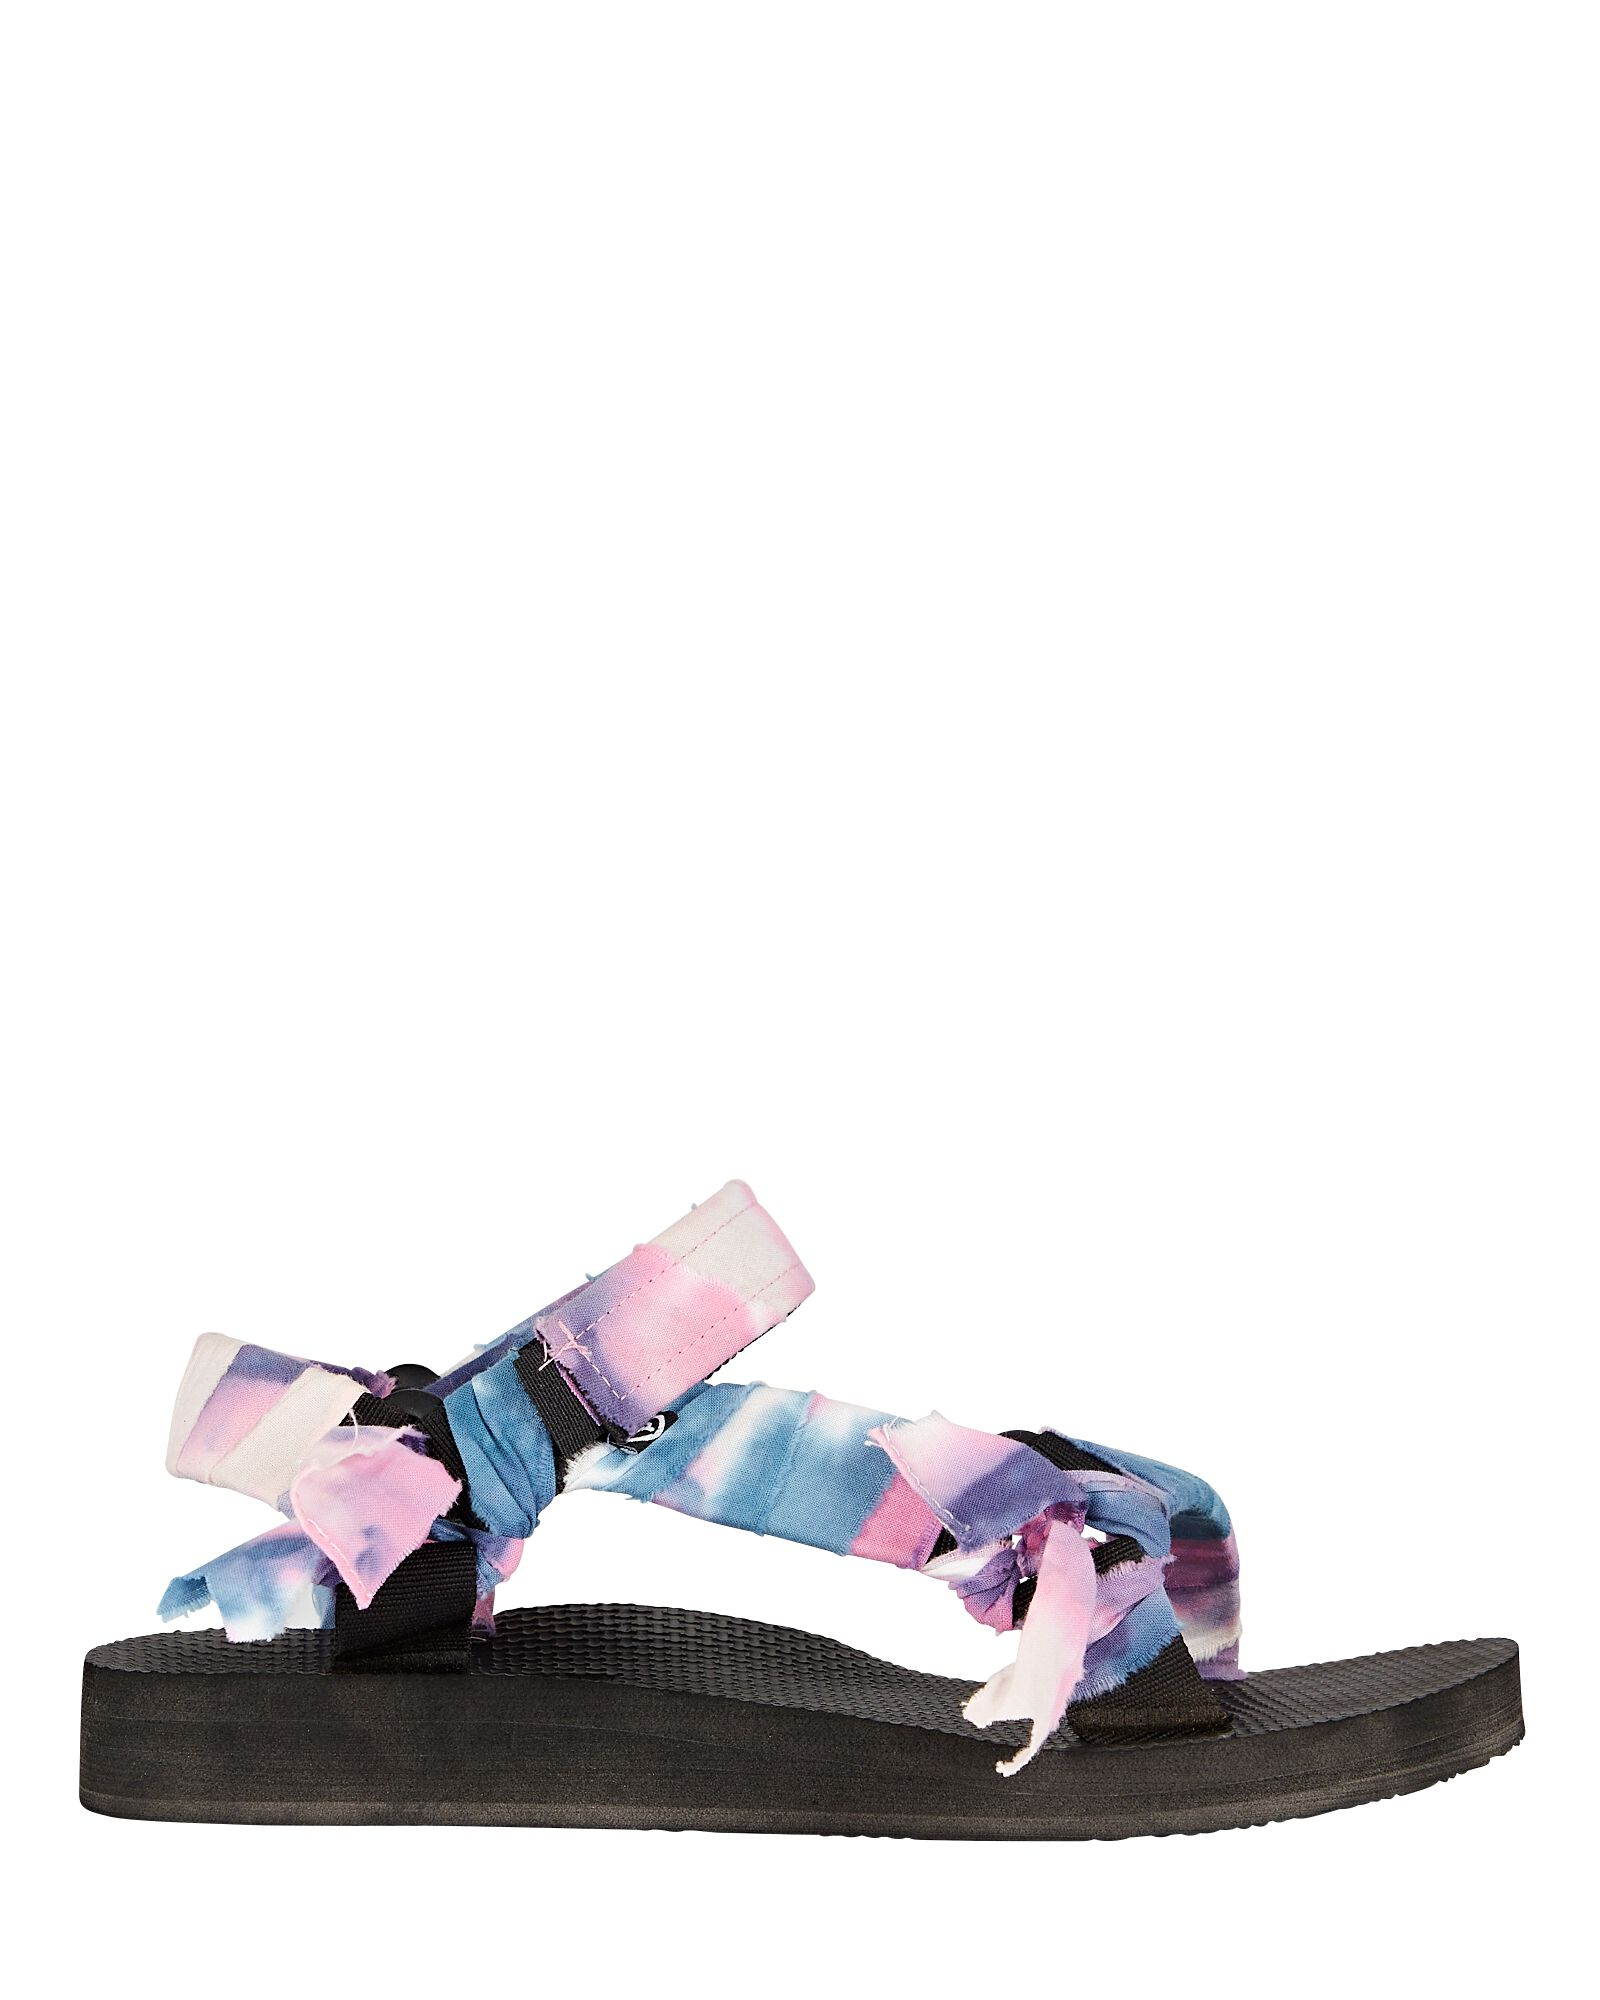 Trekky Tie-Dye Knotted Sandals, MULTI, hi-res